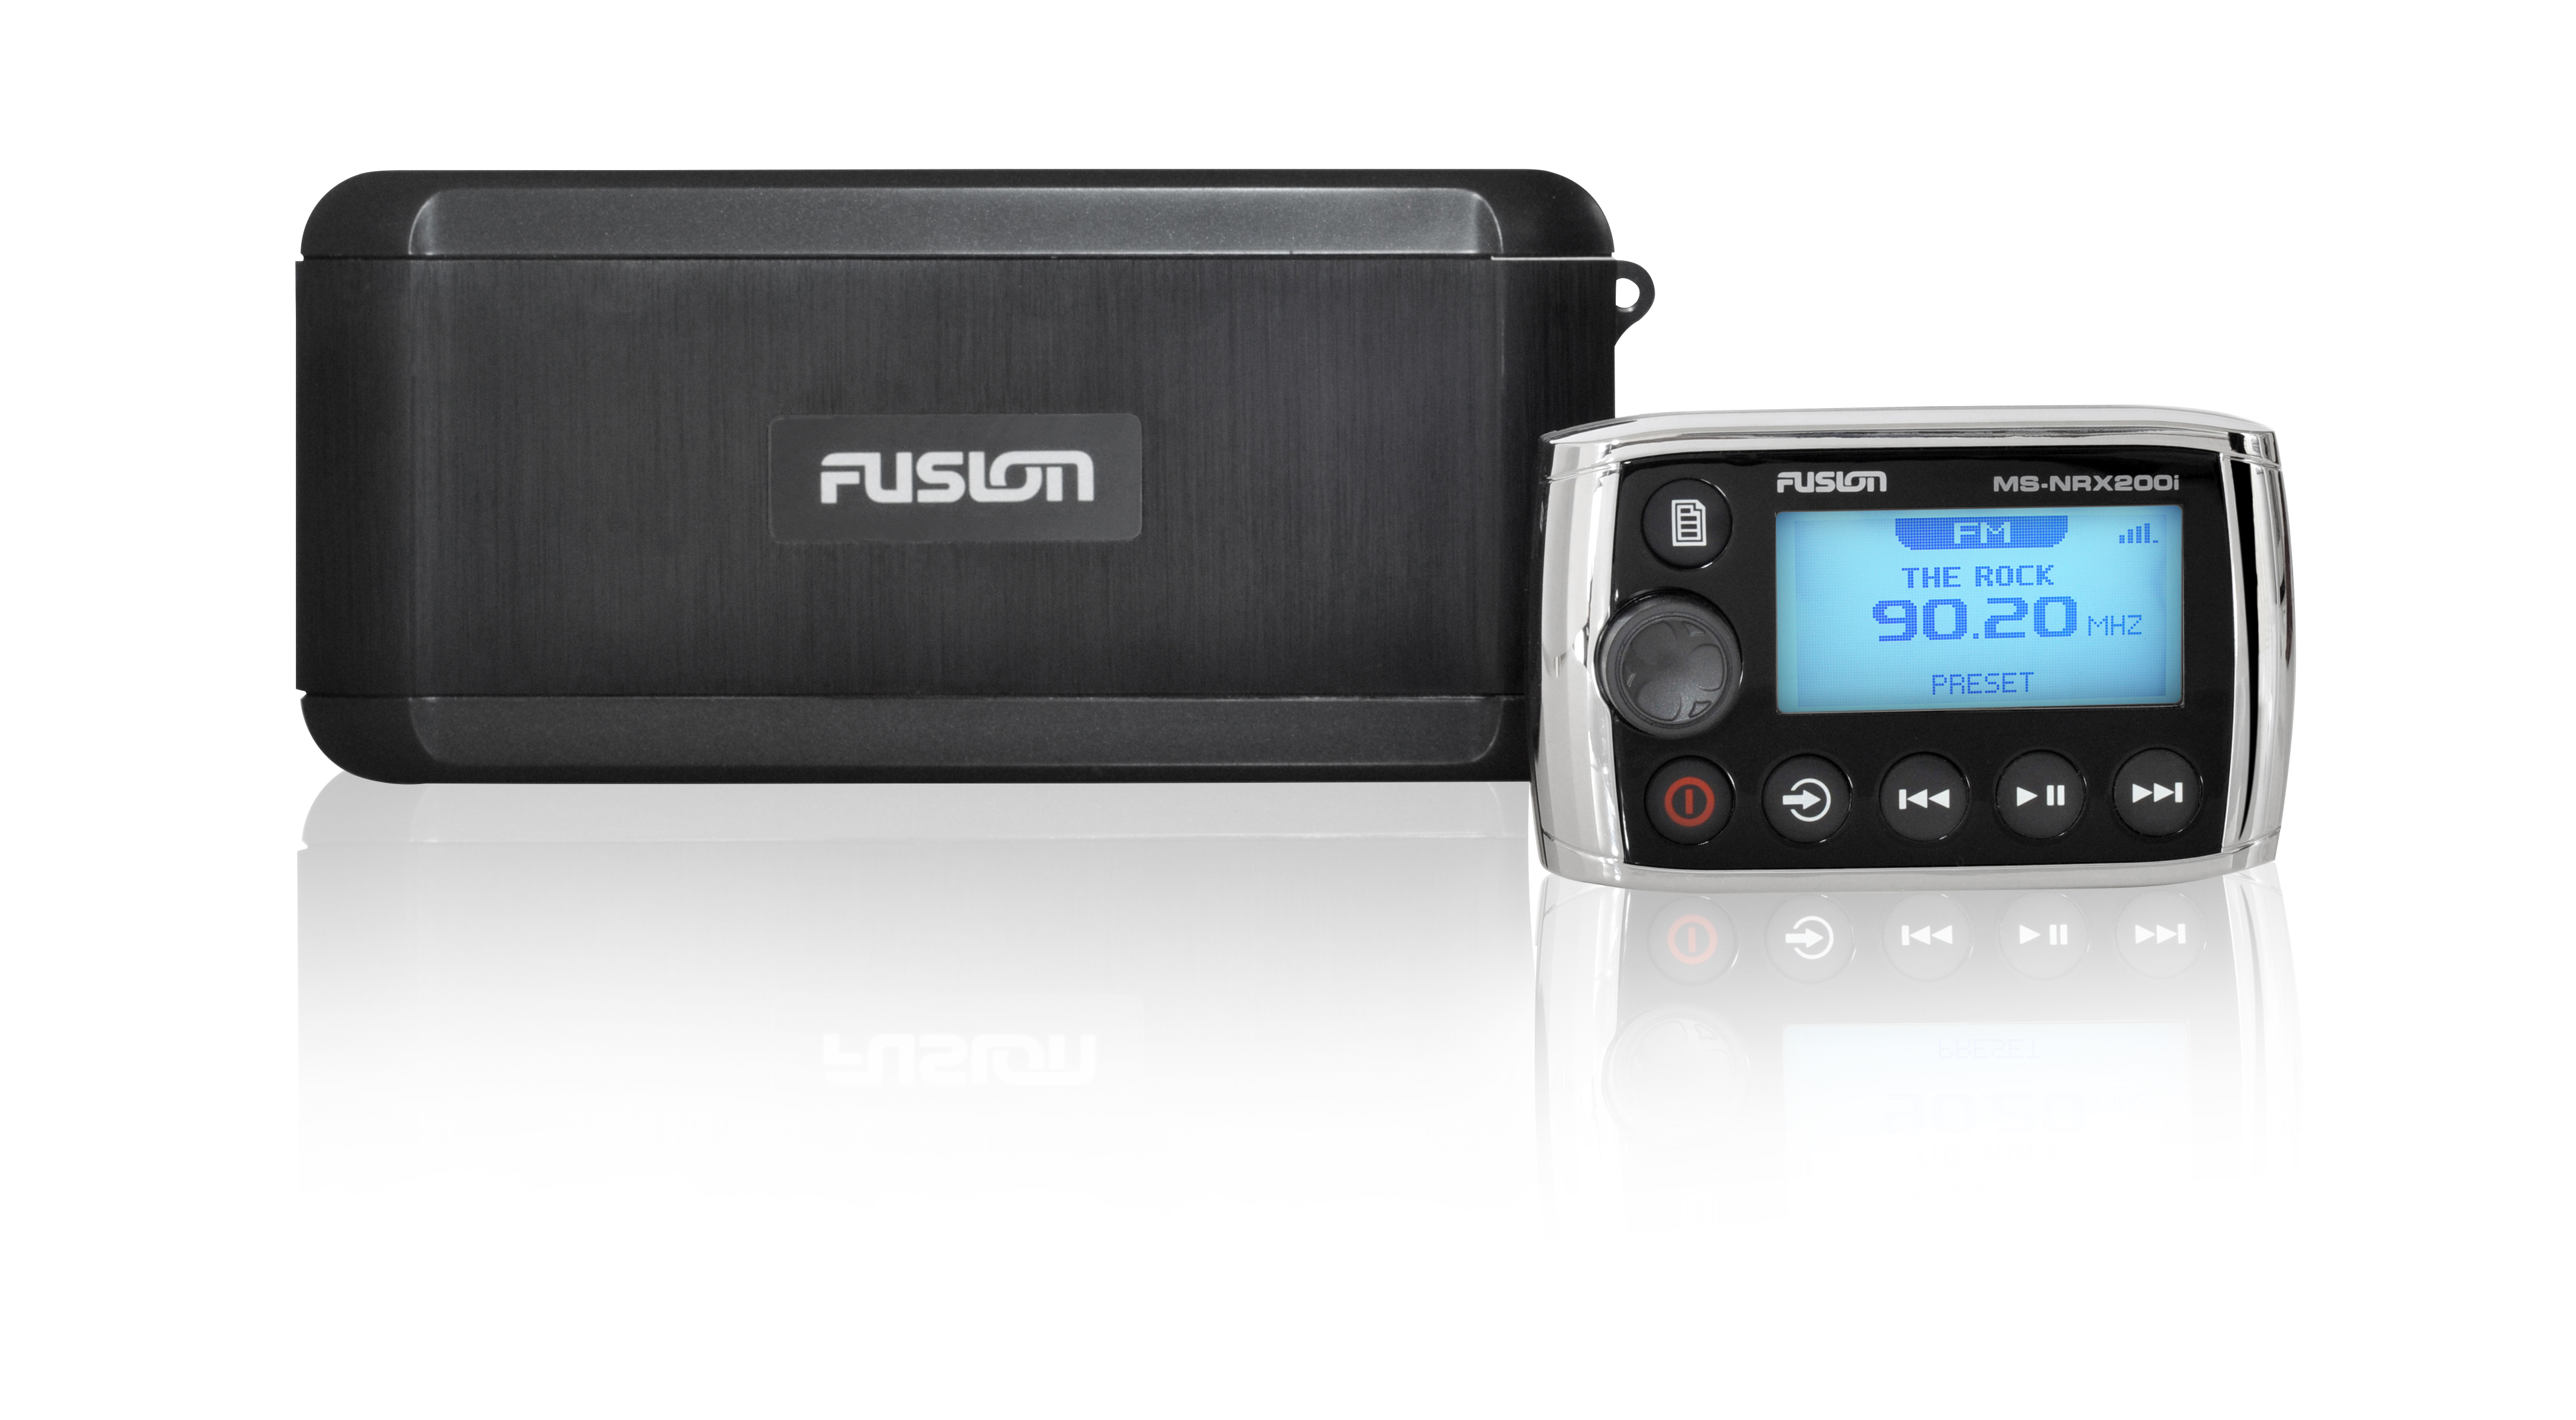 fusion bb300 black box stereo unit with wired remote